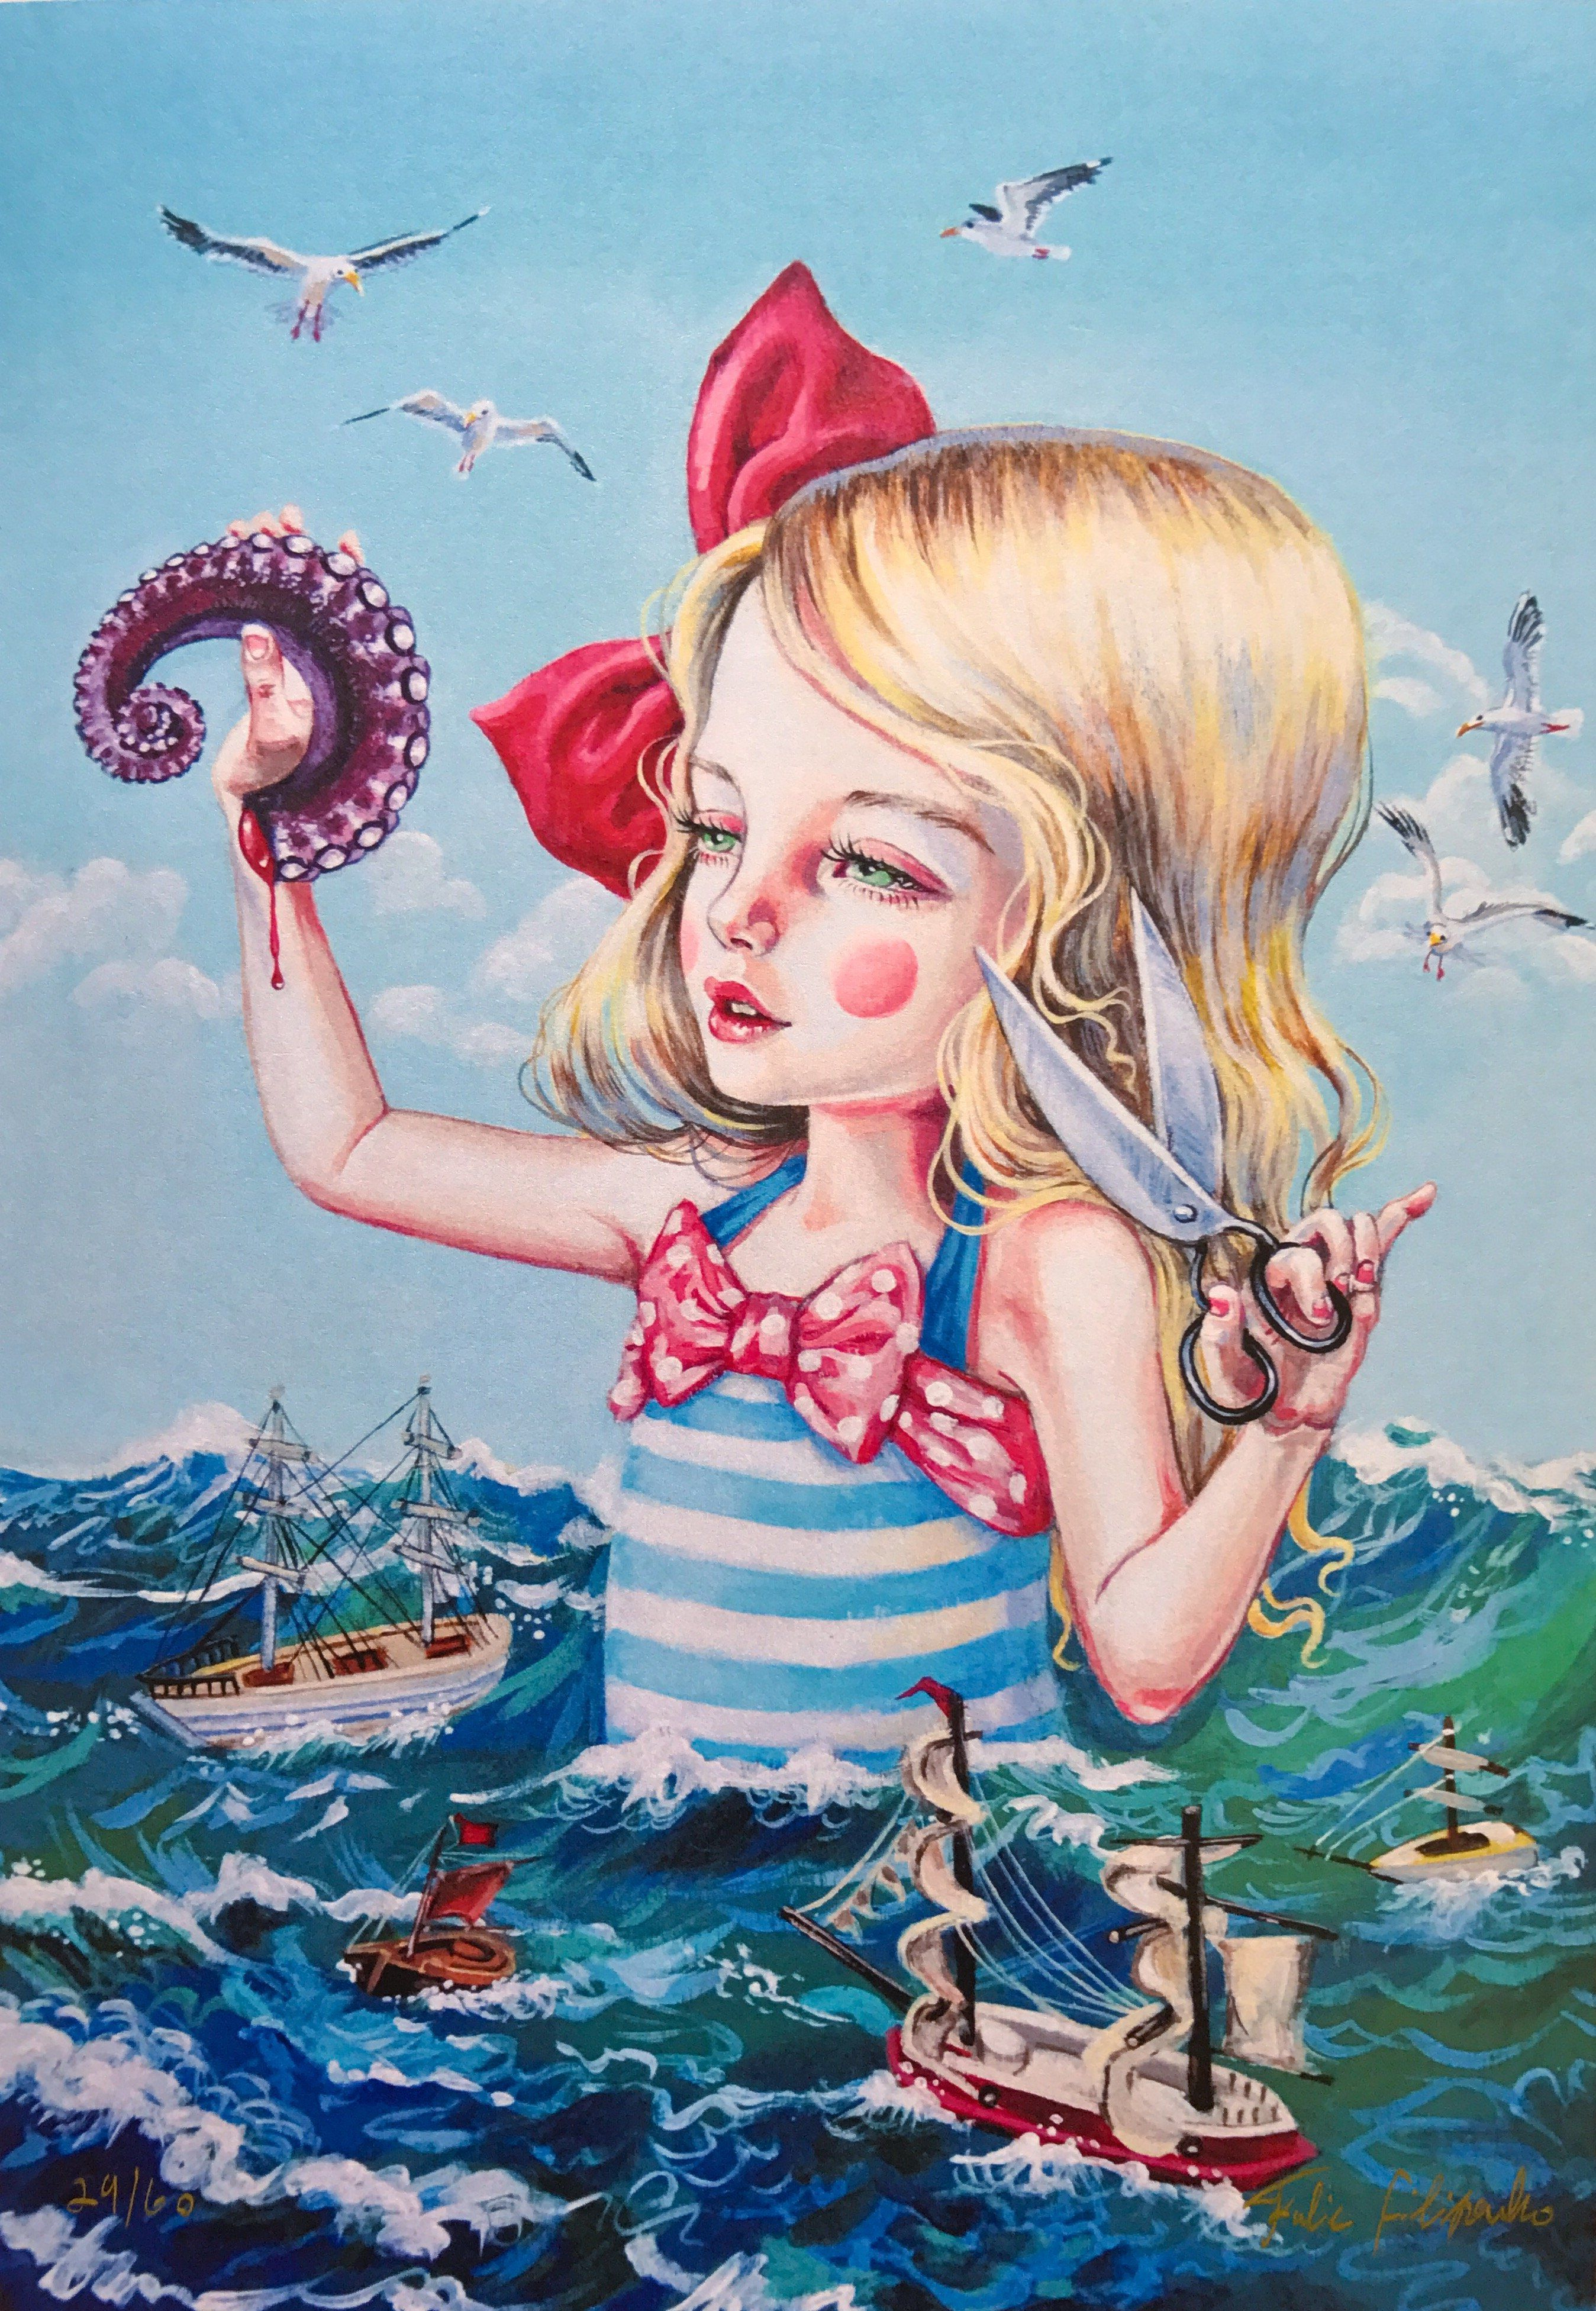 Julie filipenko with images art drawings surreal art